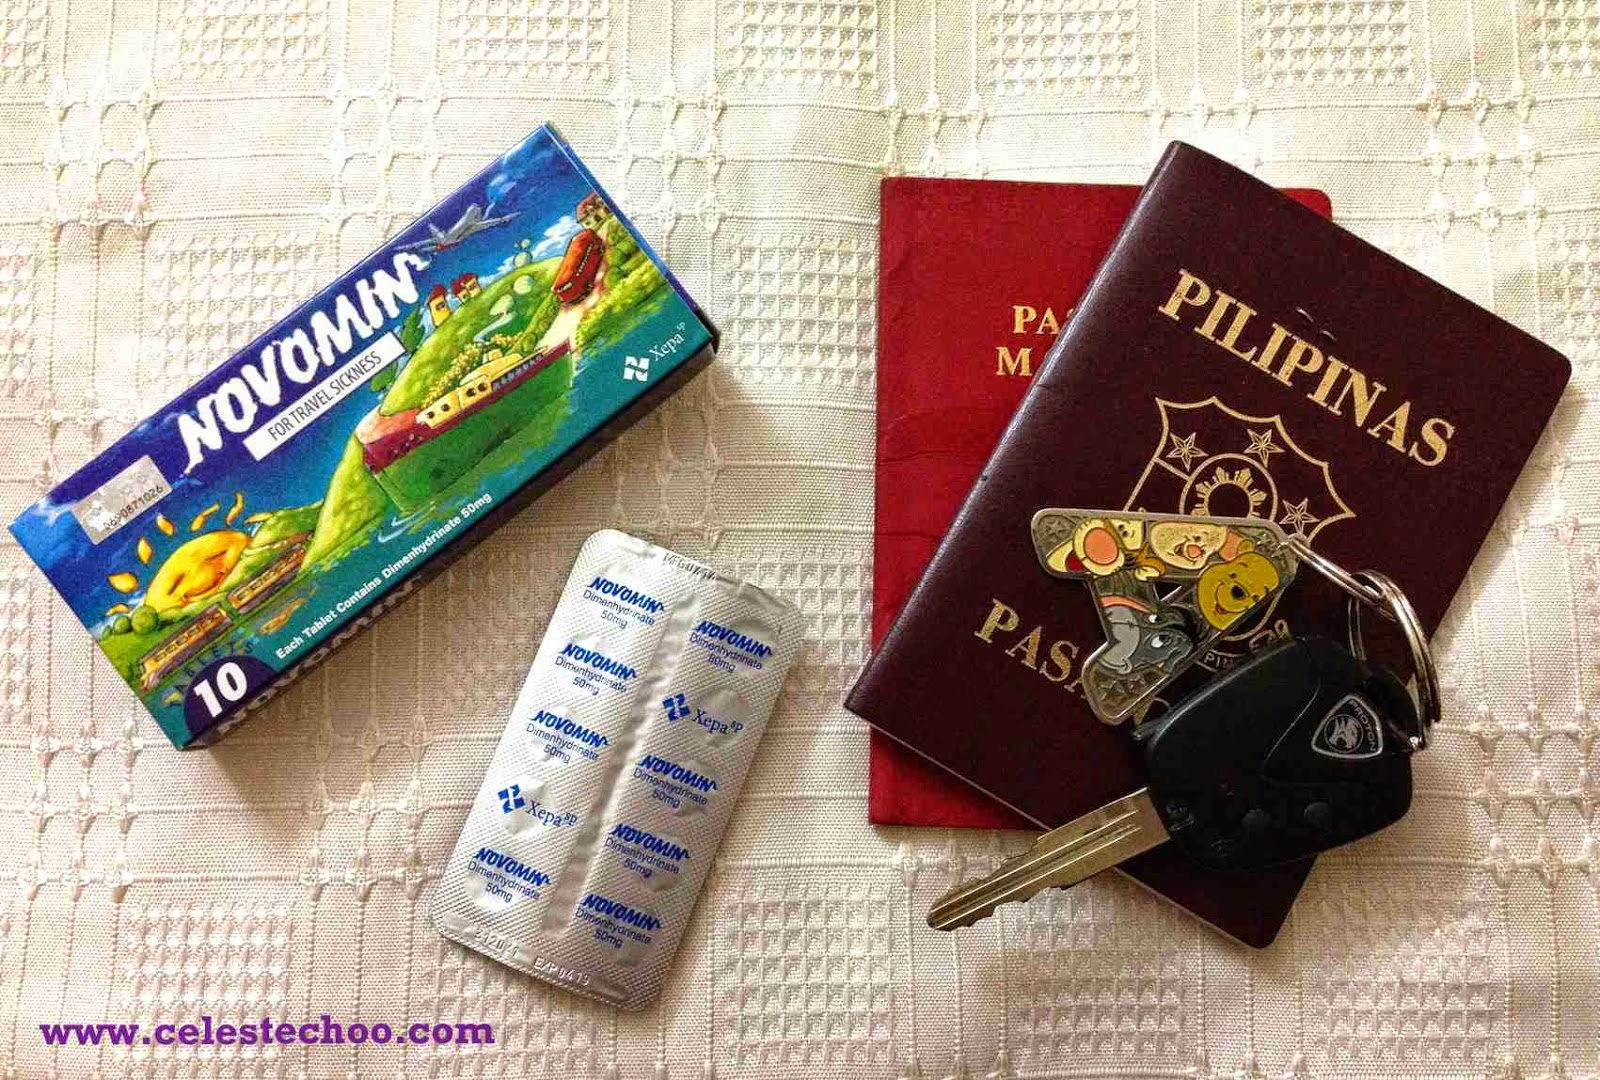 novomin_tablets_for_travel_sickness_price